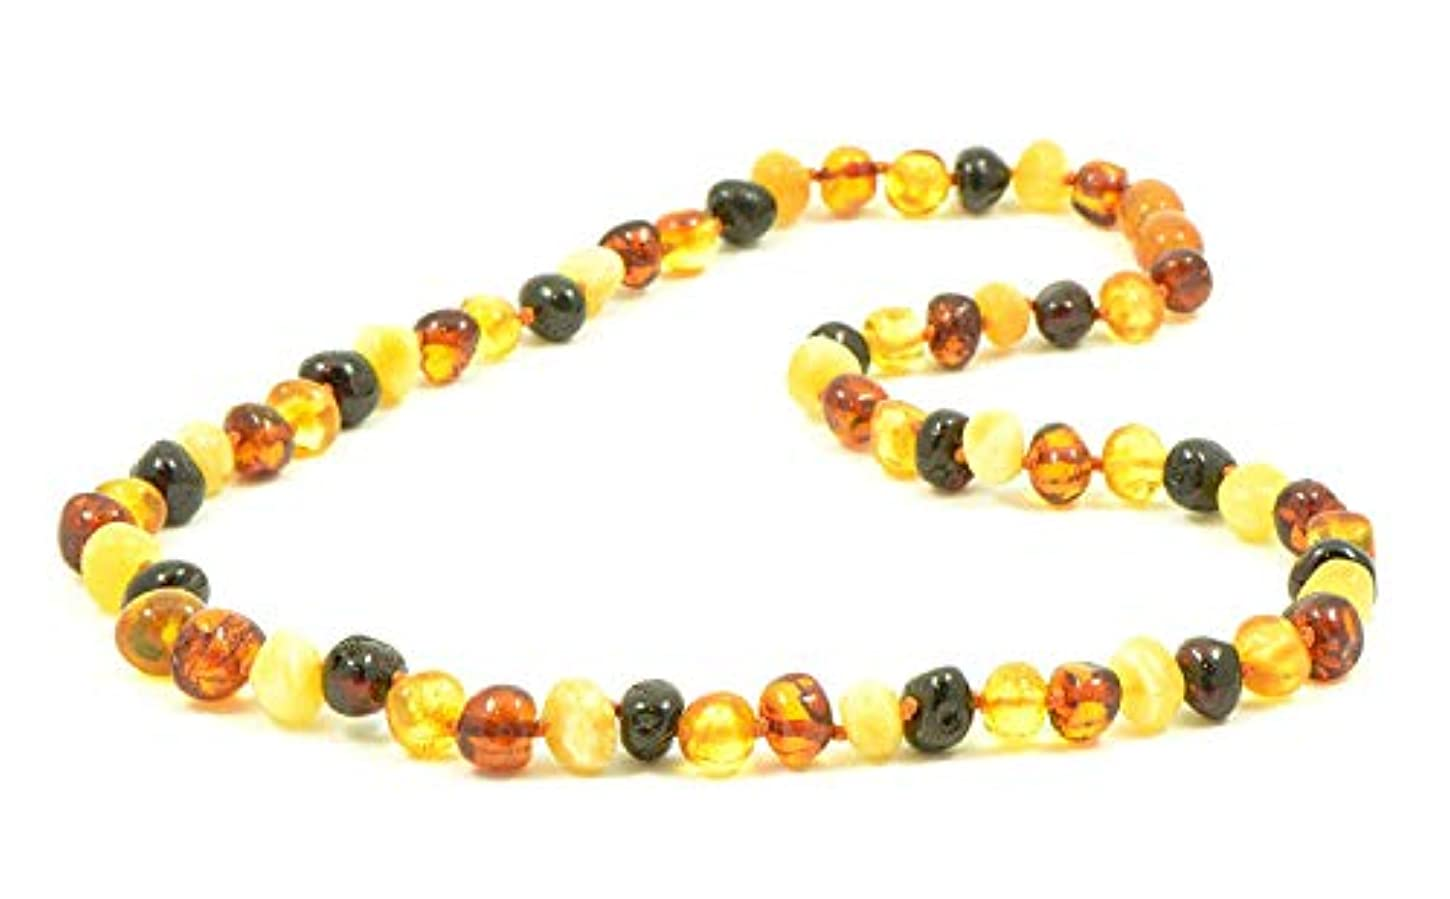 サイトライン慈悲深い温度(50cm) - AmberJewelry Baltic Amber Necklaces for Adults - 46cm - 50cm Made from Authentic Baltic Amber Beads -...